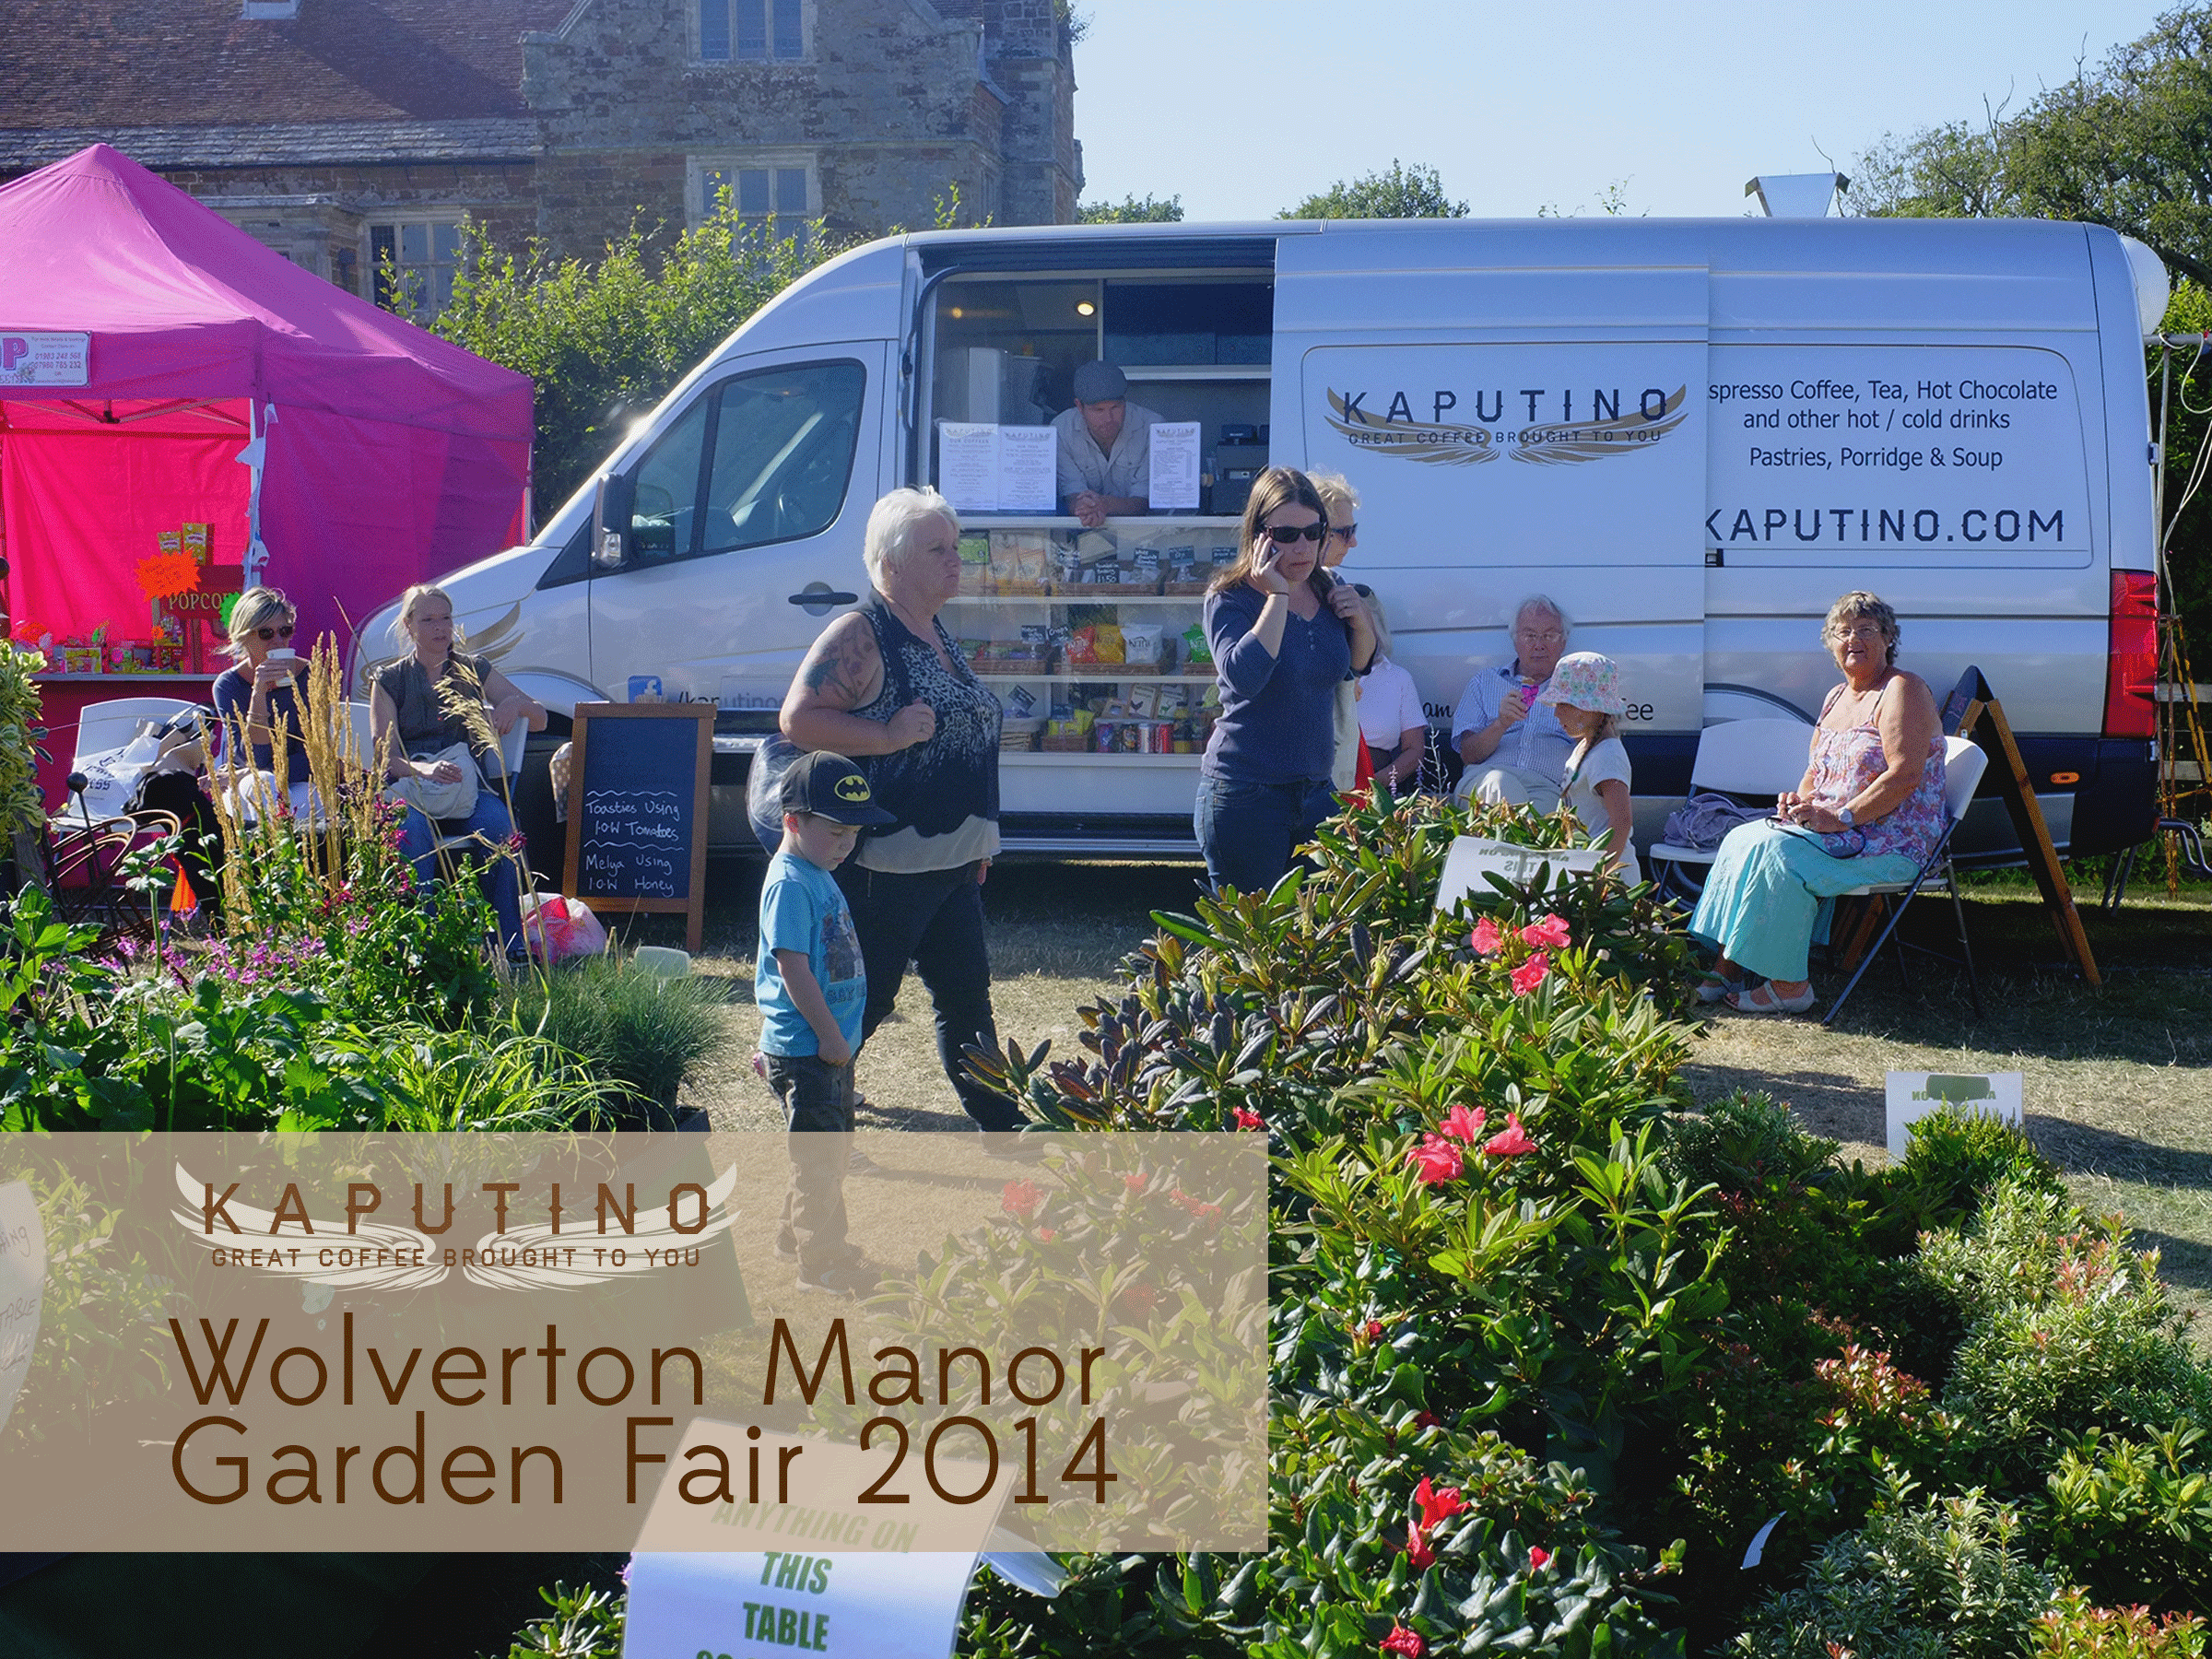 The Wolverton Manor Garden Fair 2014 with Kaputino® coffee van